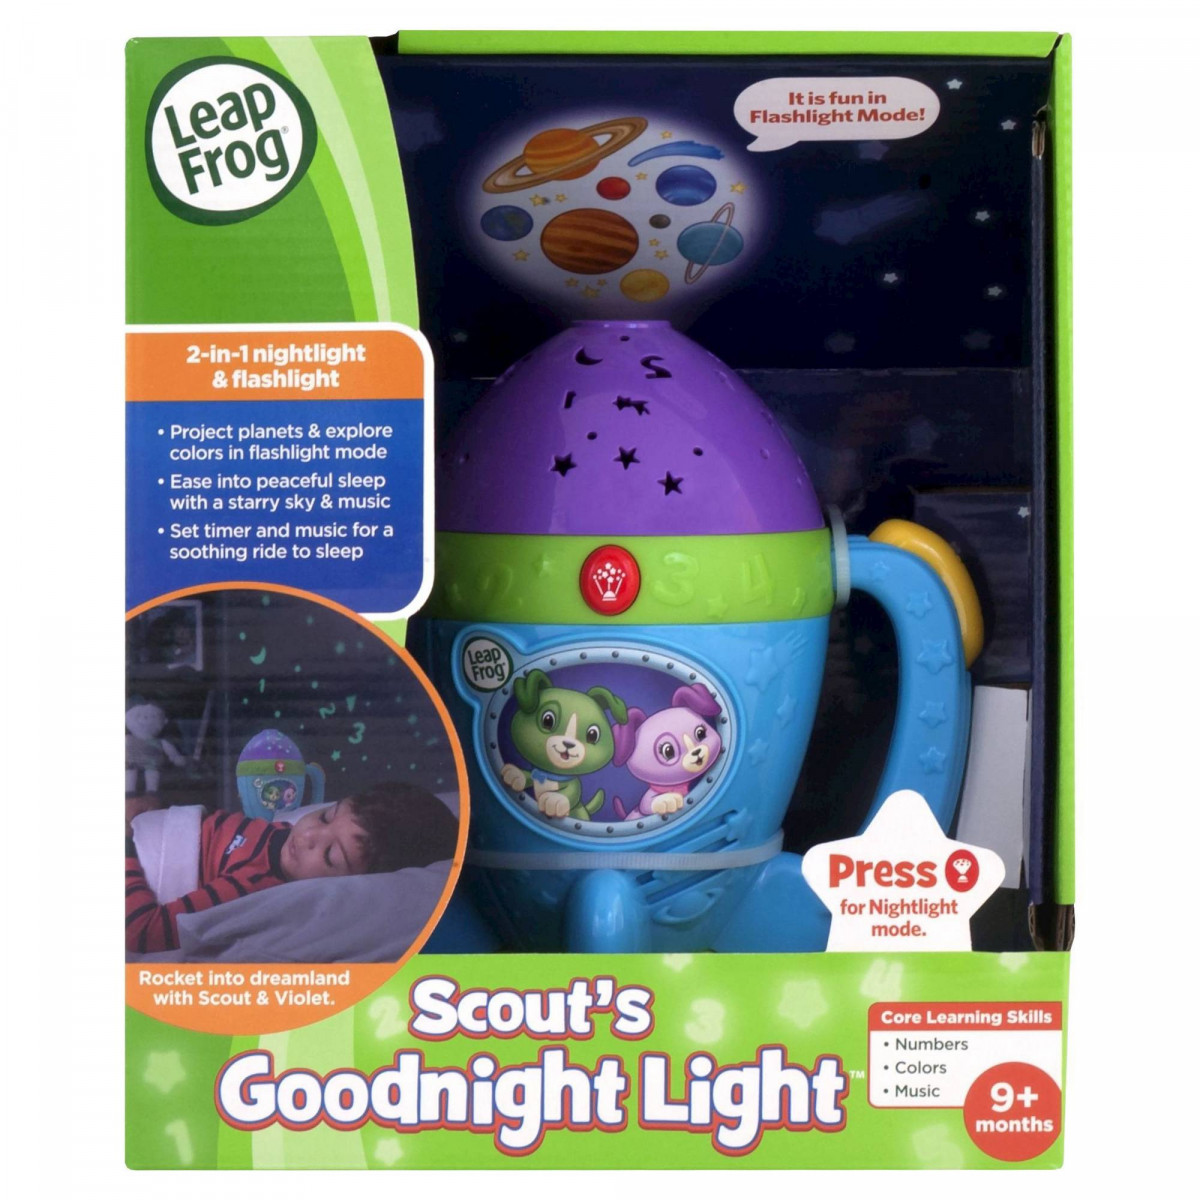 leapfrog scouts goodnight light. Black Bedroom Furniture Sets. Home Design Ideas